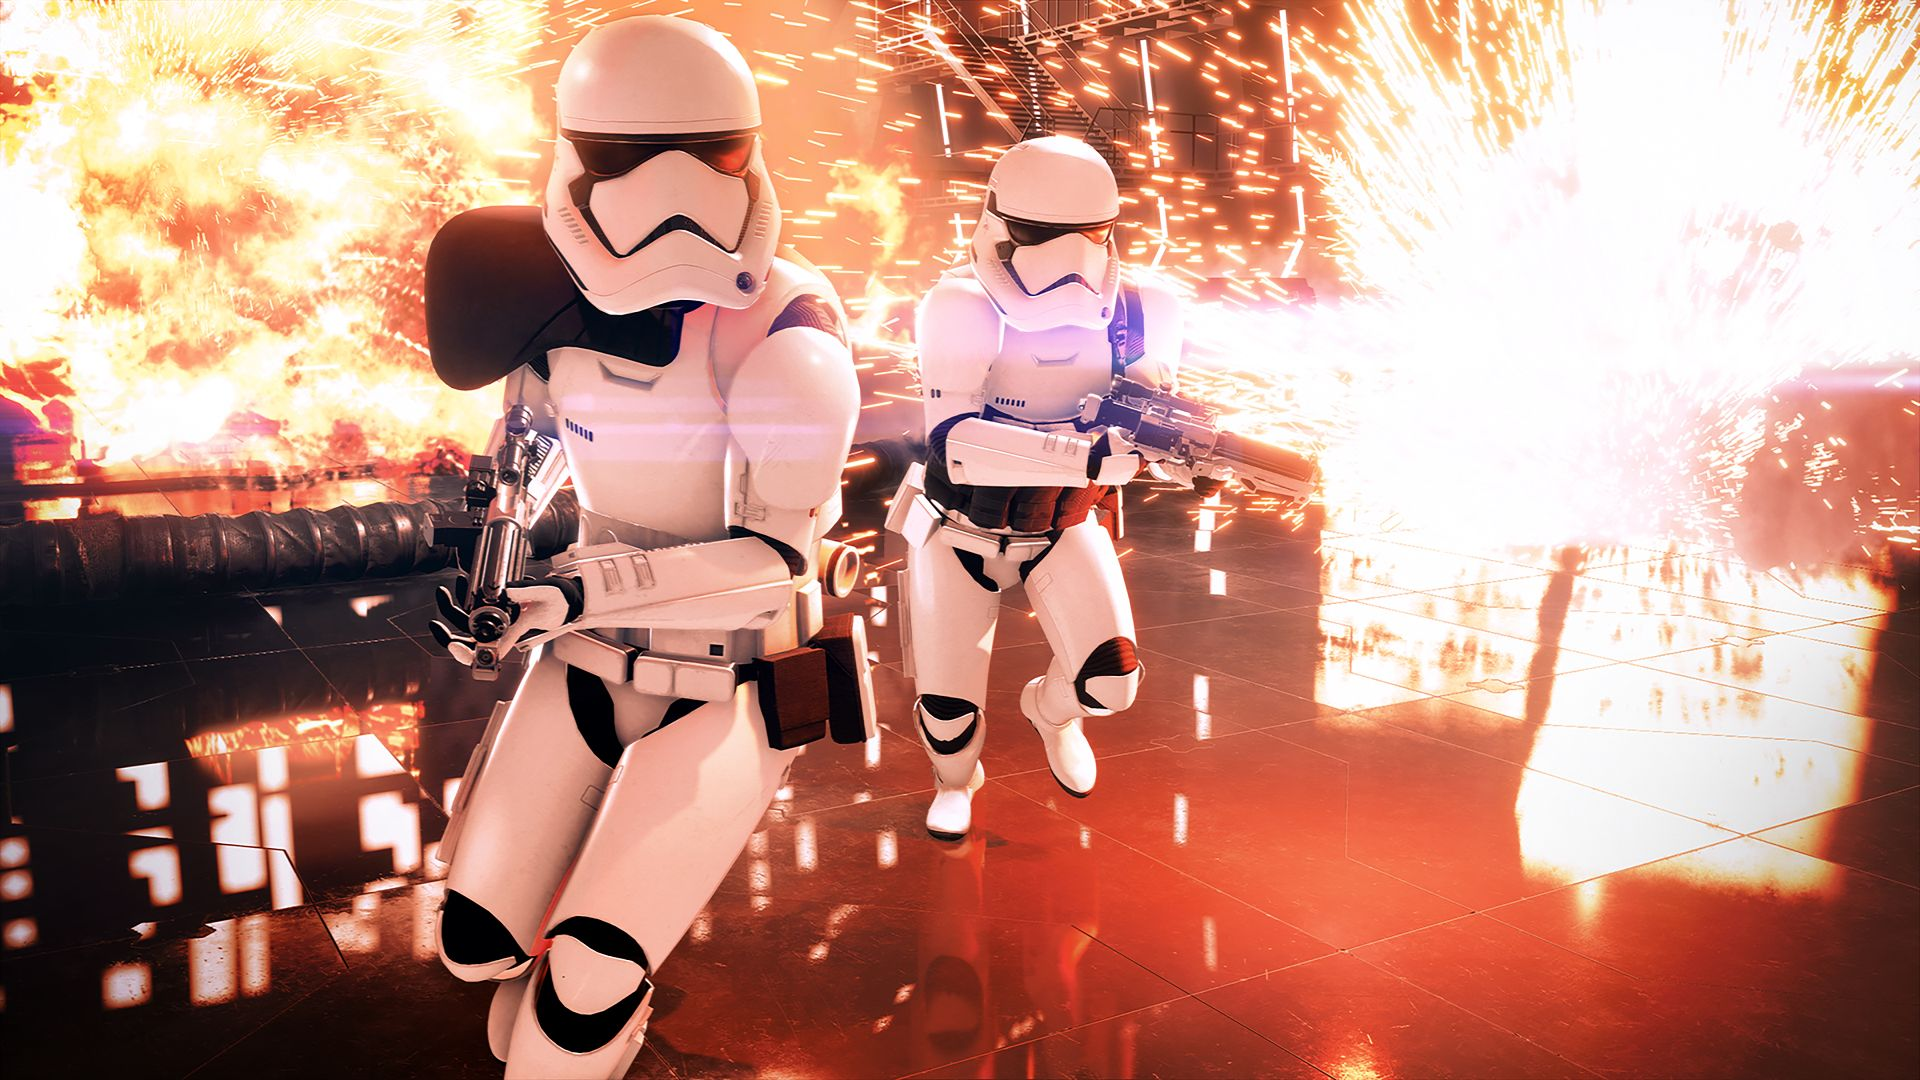 EA buckles under online pressure and cuts cost of heroes in Star Wars Battlefront II. But is the damage already done?